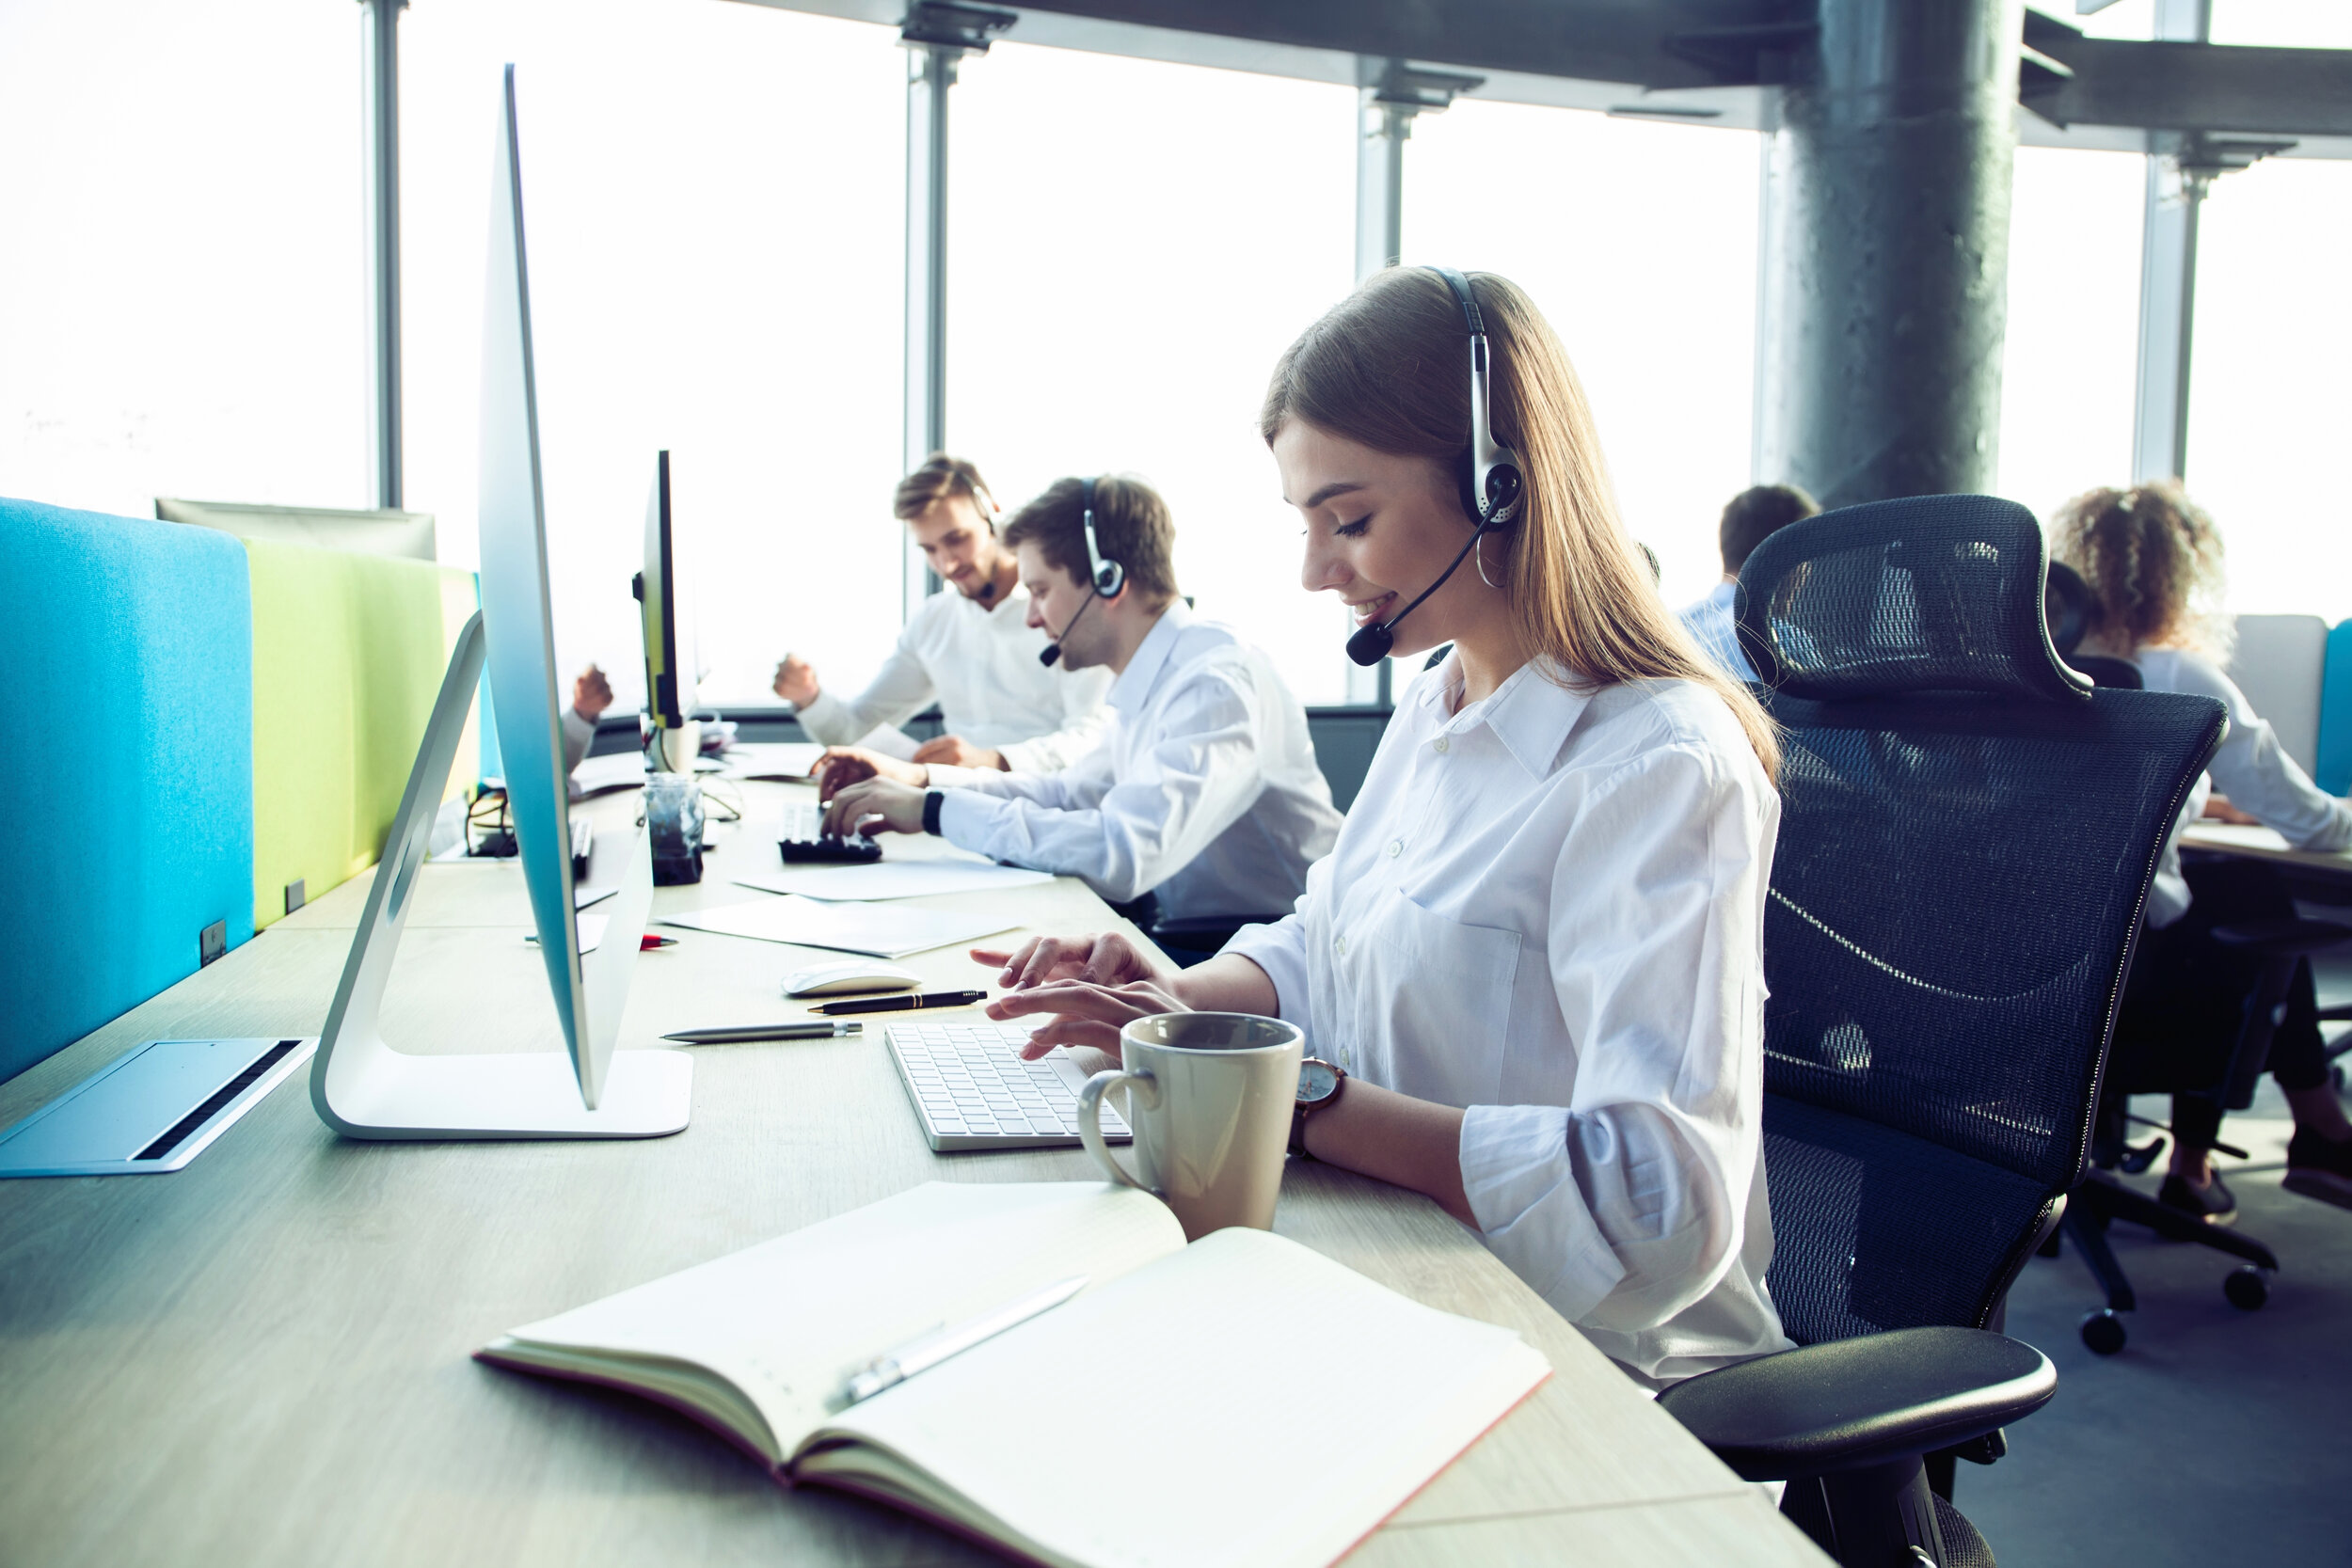 Happy Agents = Happy Customers - A fully integrated contact center with CRM enables a better agent experience which translates into a better experience for your customers. Customer Dynamics can help plan, implement and support the CRM and office productivity solution your company needs to streamline your processes, making your agents and your customers happy.See How